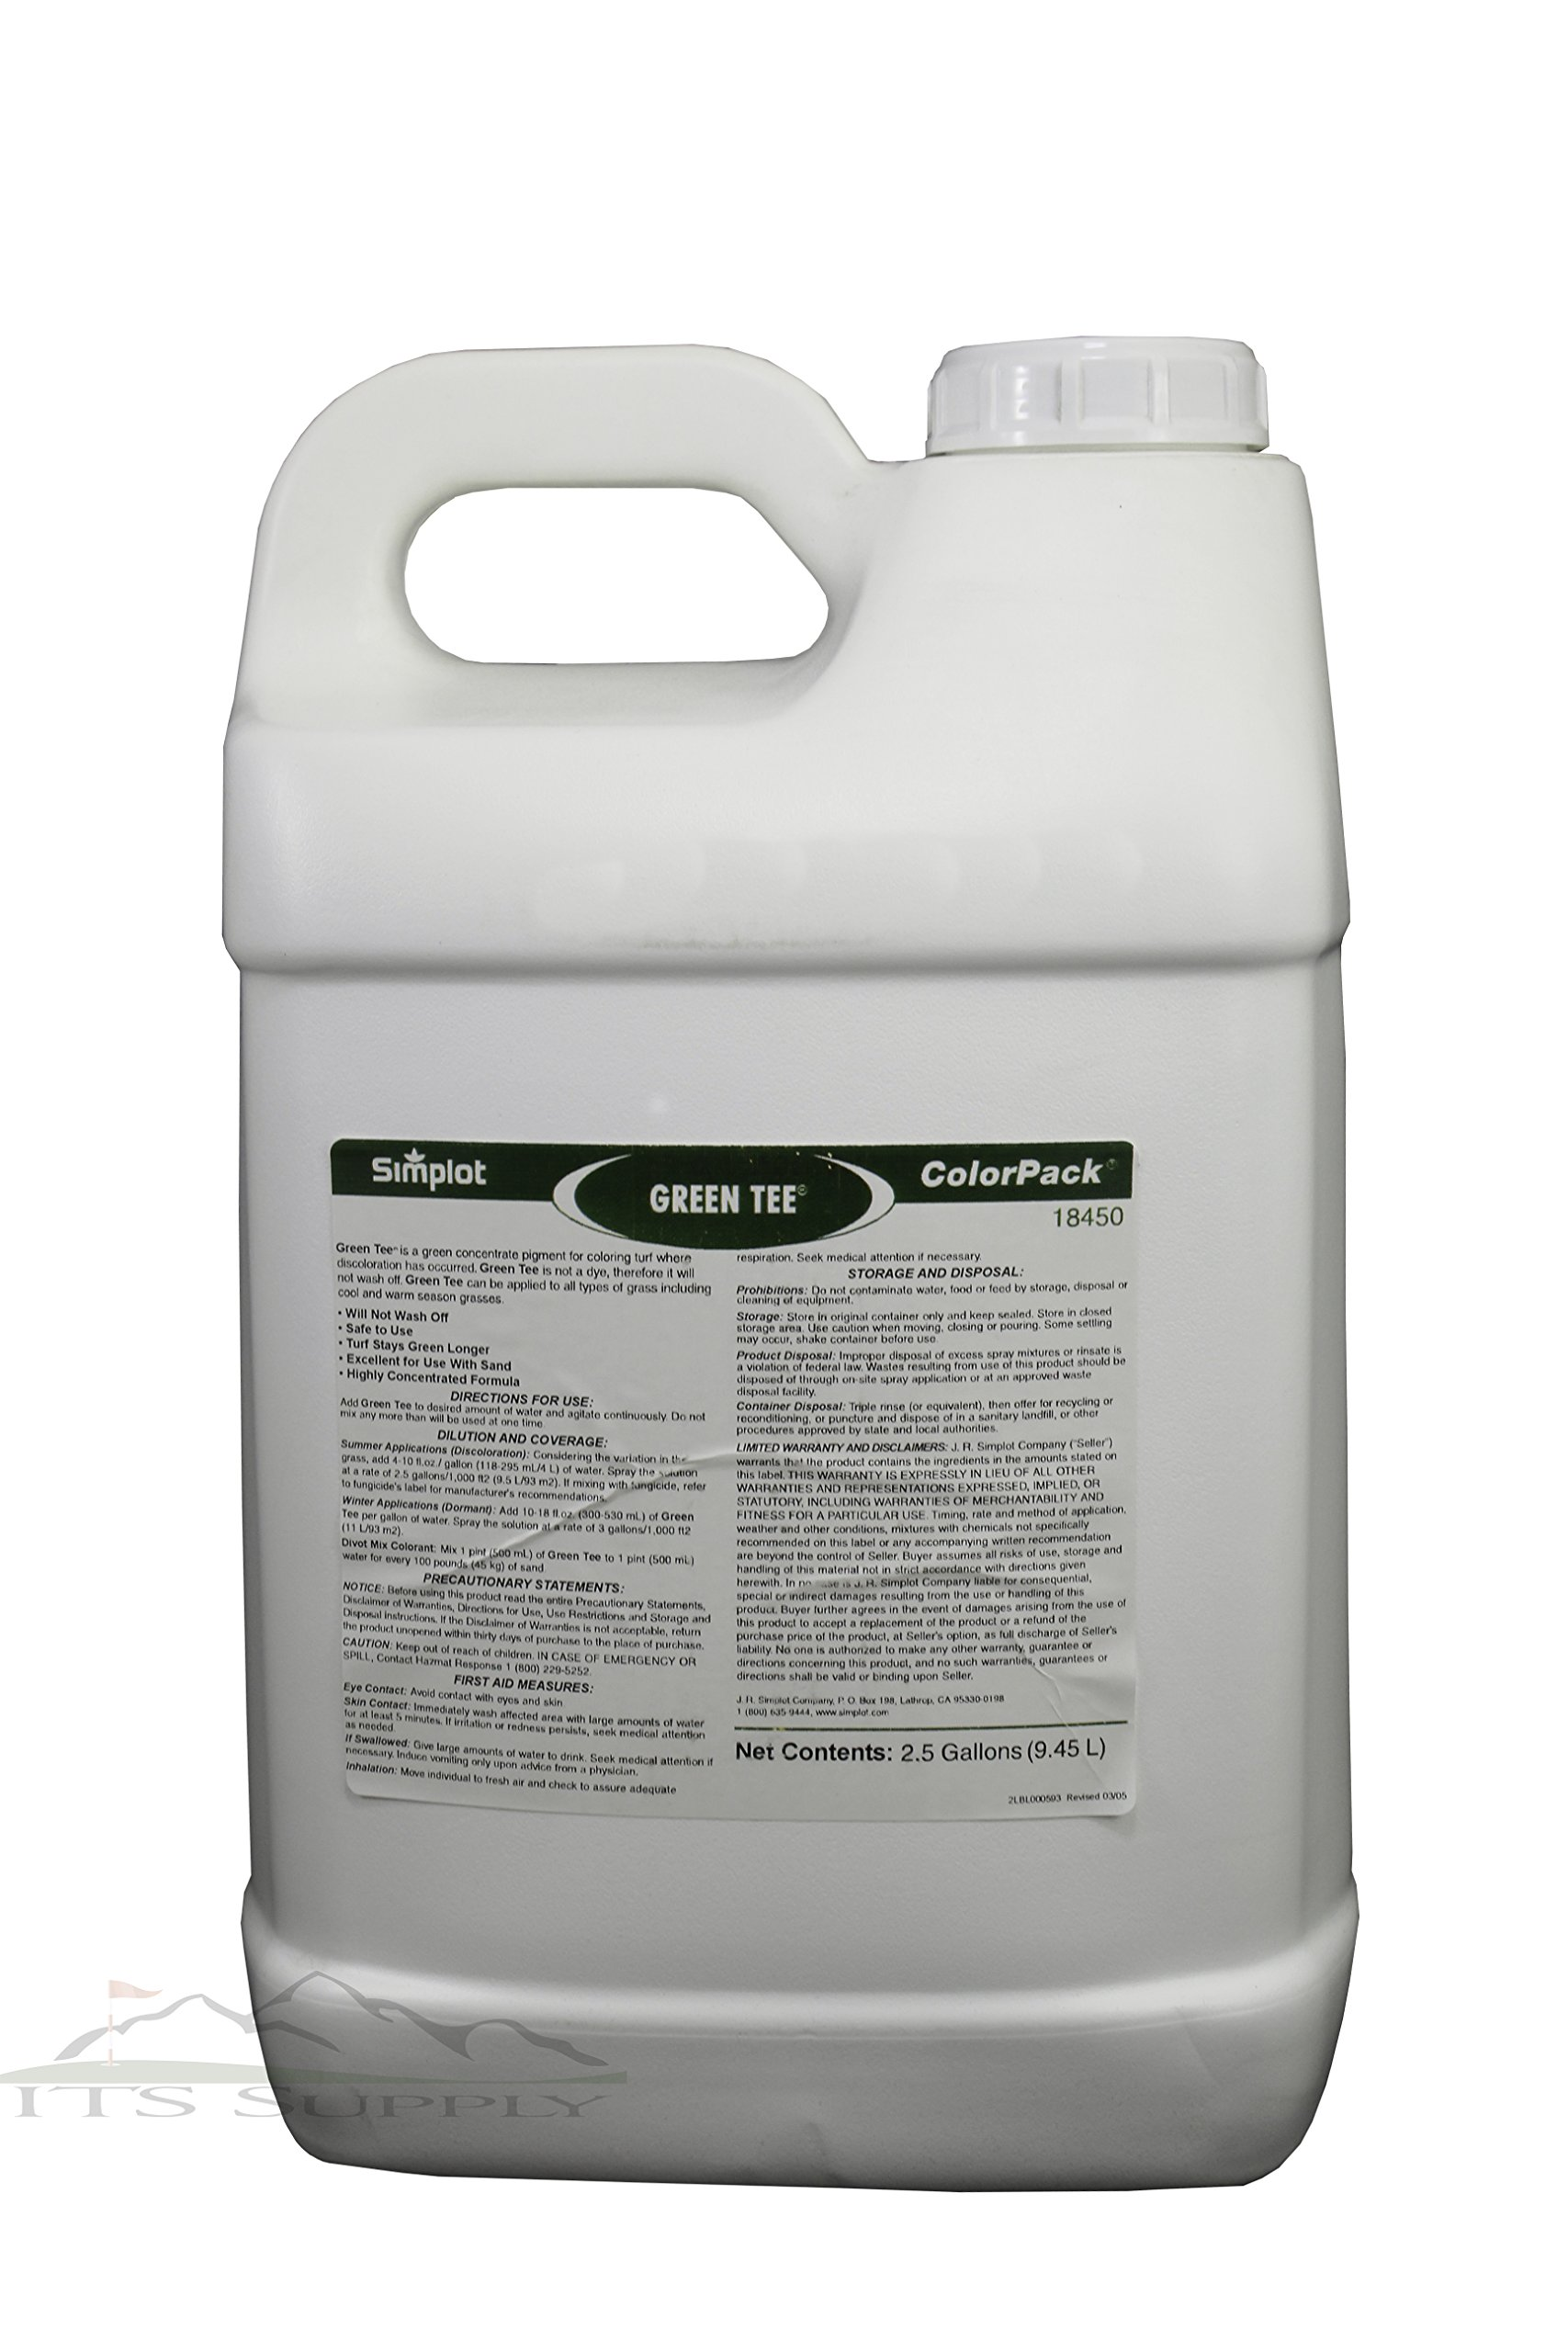 Green Tee Turf Colorant Lawn Paint 2.5 Gallons Covers 15,000 to 30,000 square feet-Concentrated and professional grade colorant to improve the look of your lawn